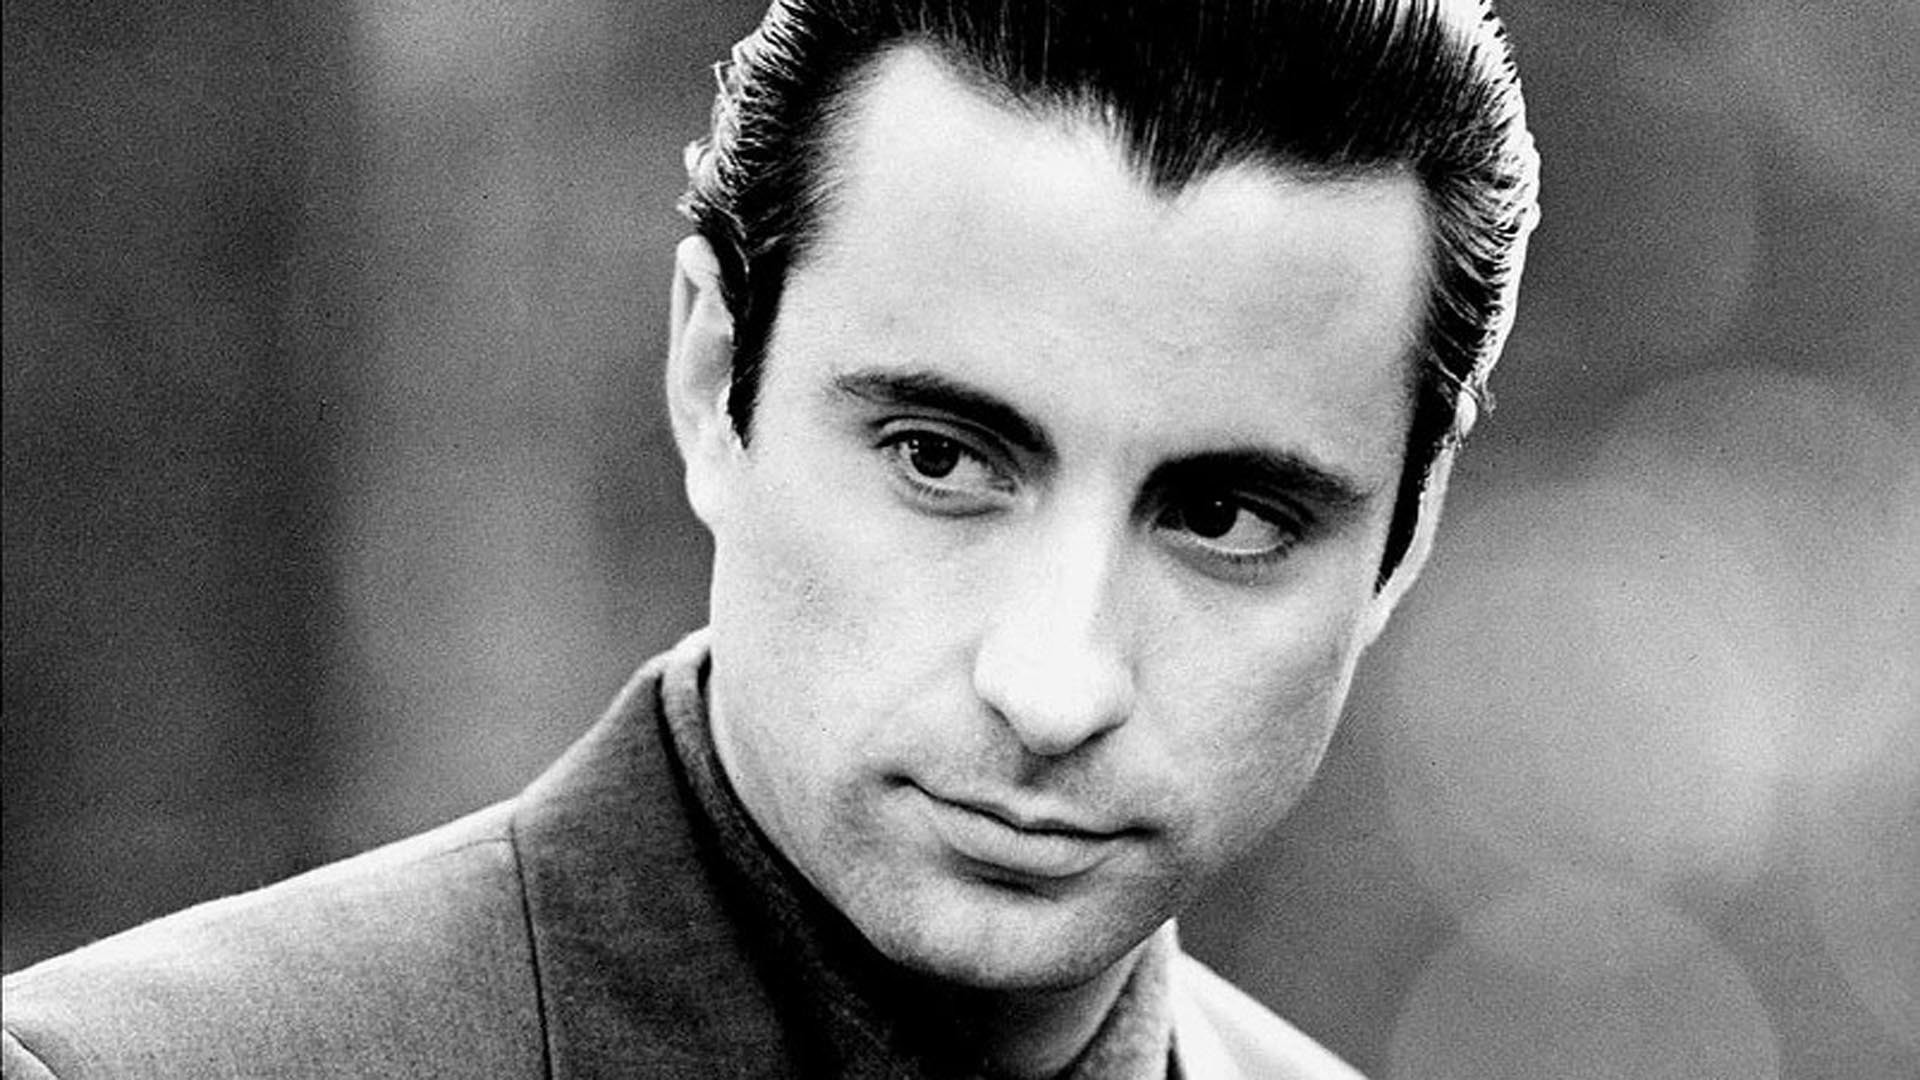 Andy Garcia Wallpapers Images Photos Pictures Backgrounds